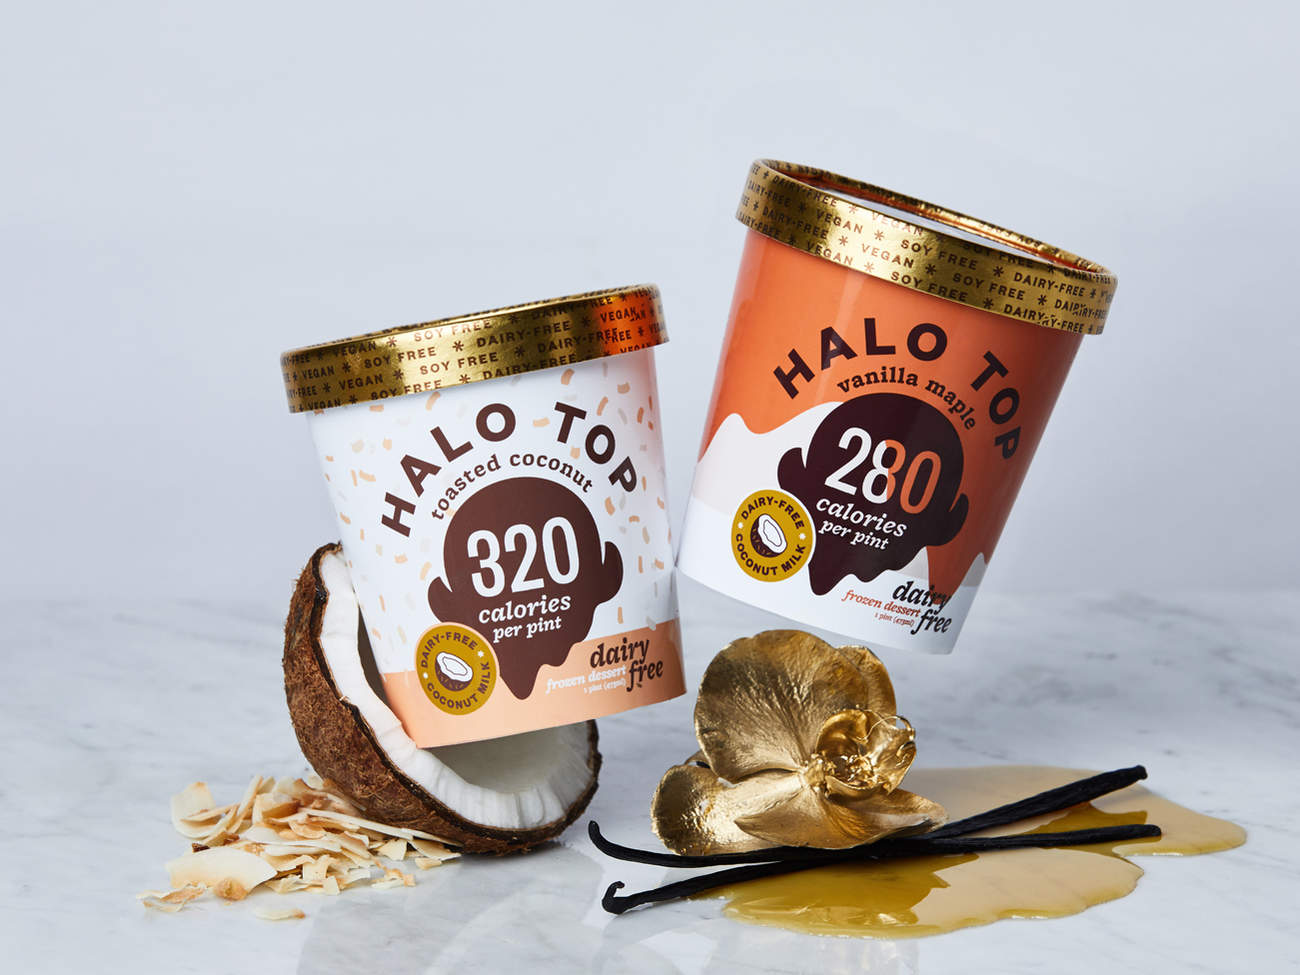 Halo-top-two-new-flavors